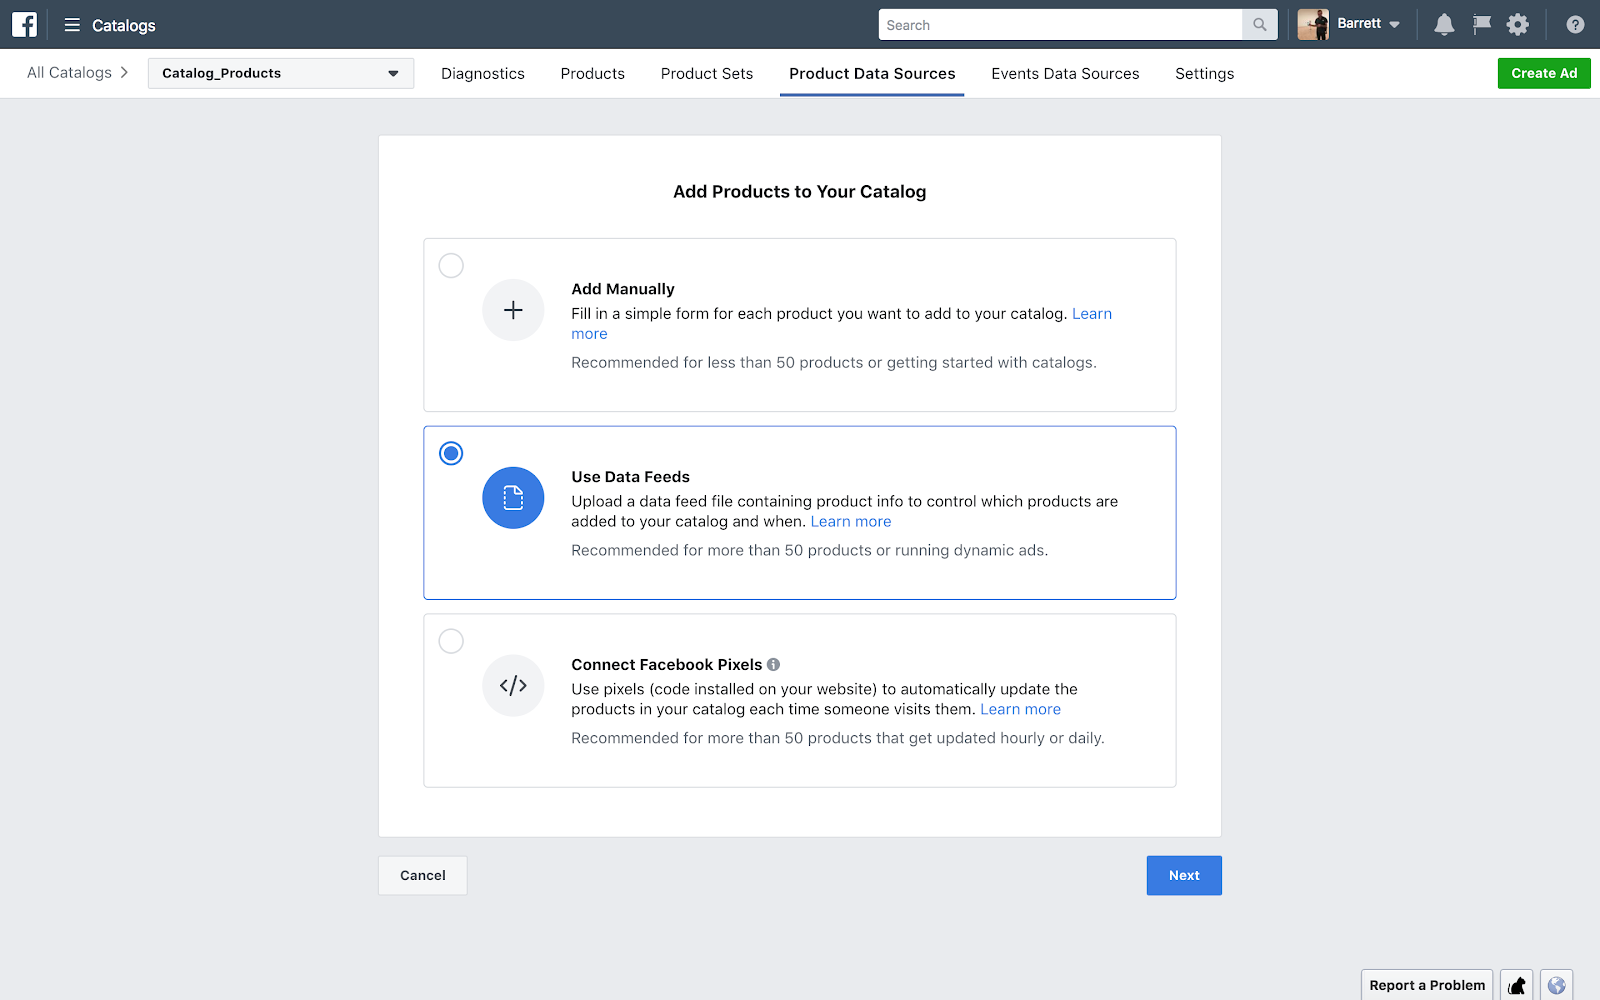 Use data feeds to add products to your Facebook Catalog